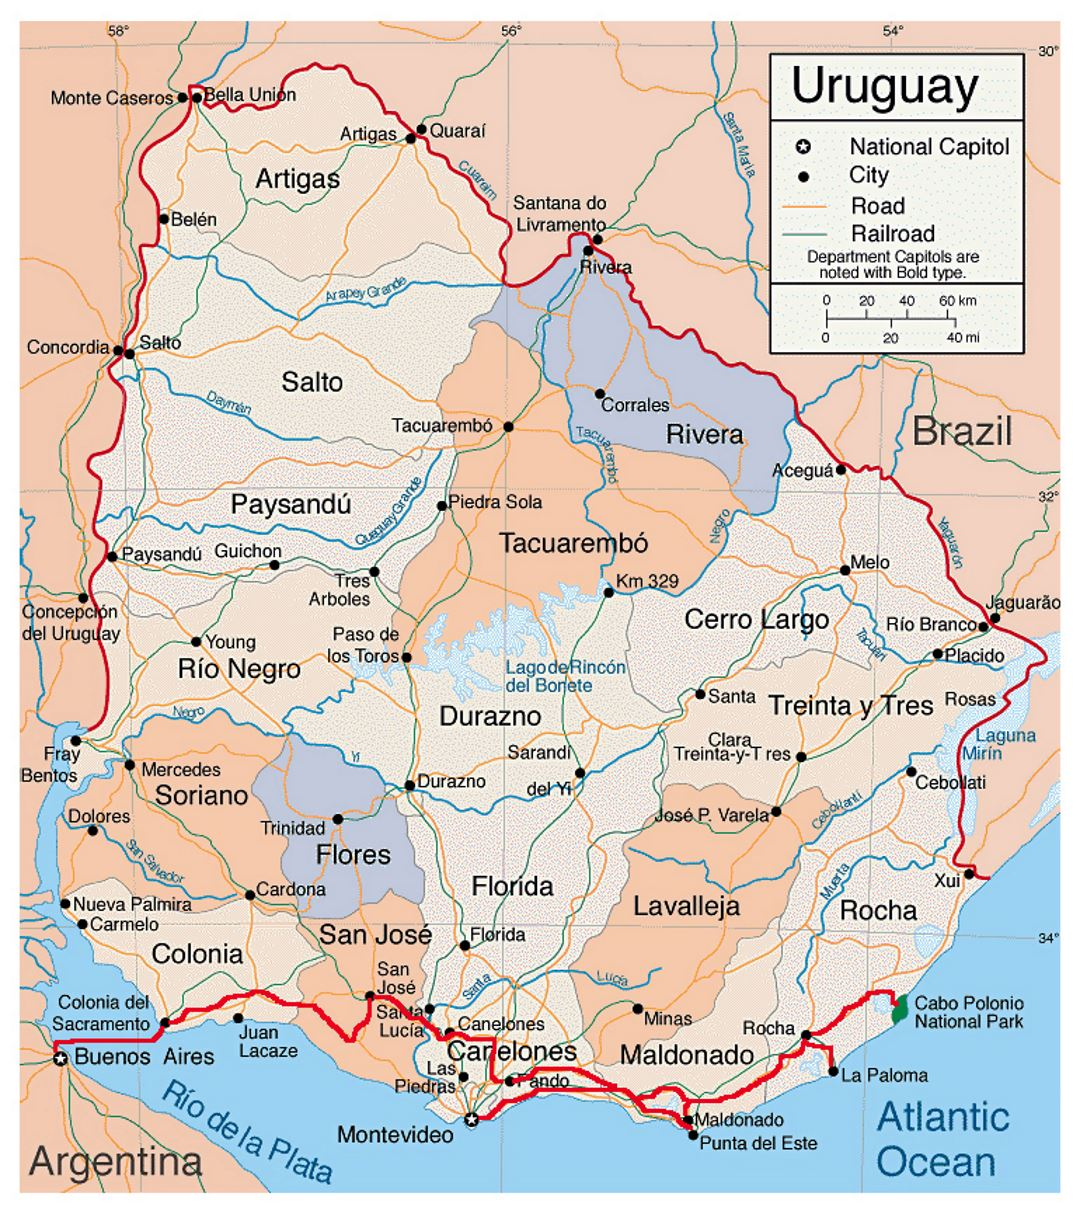 Detailed Political And Administreative Map Of Uruguay With Roads - Map of uruguay